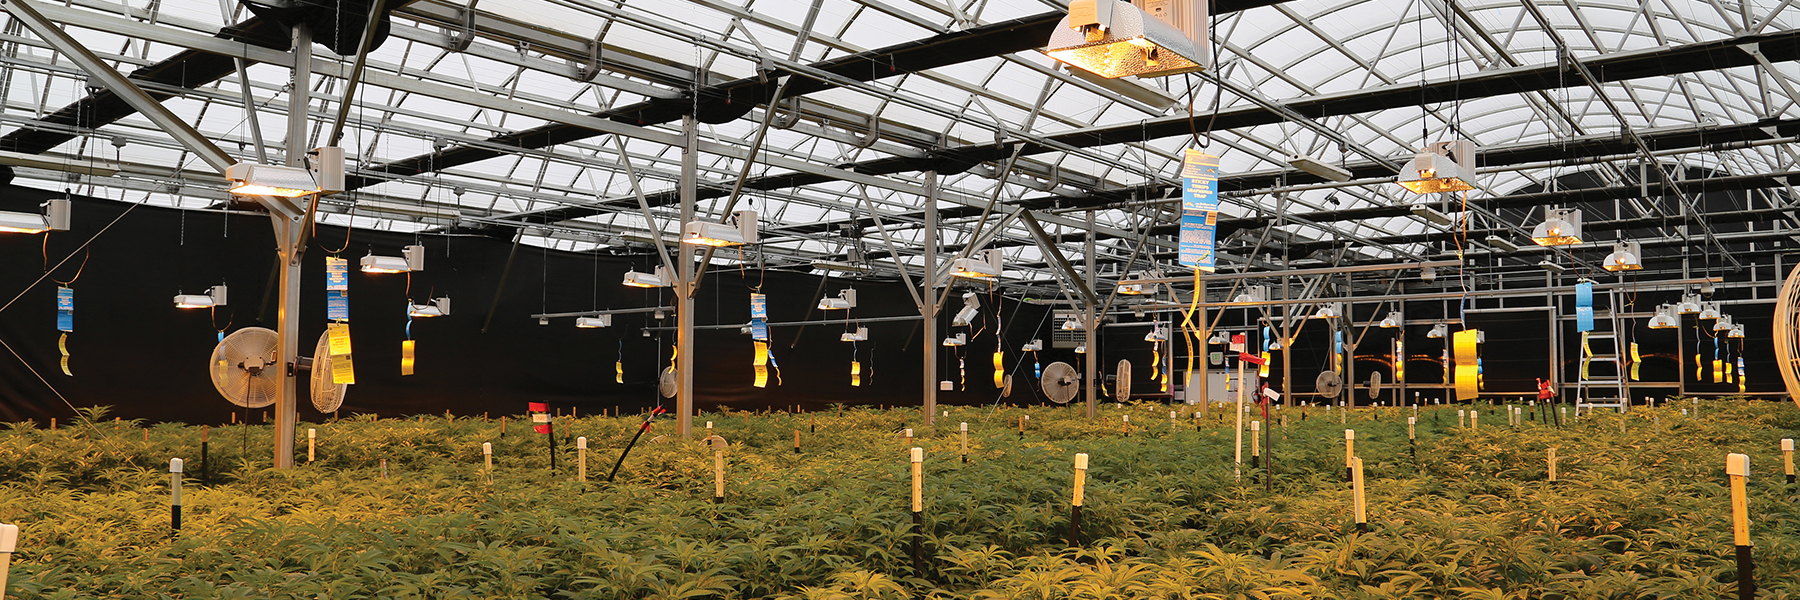 light deprivation greenhouses